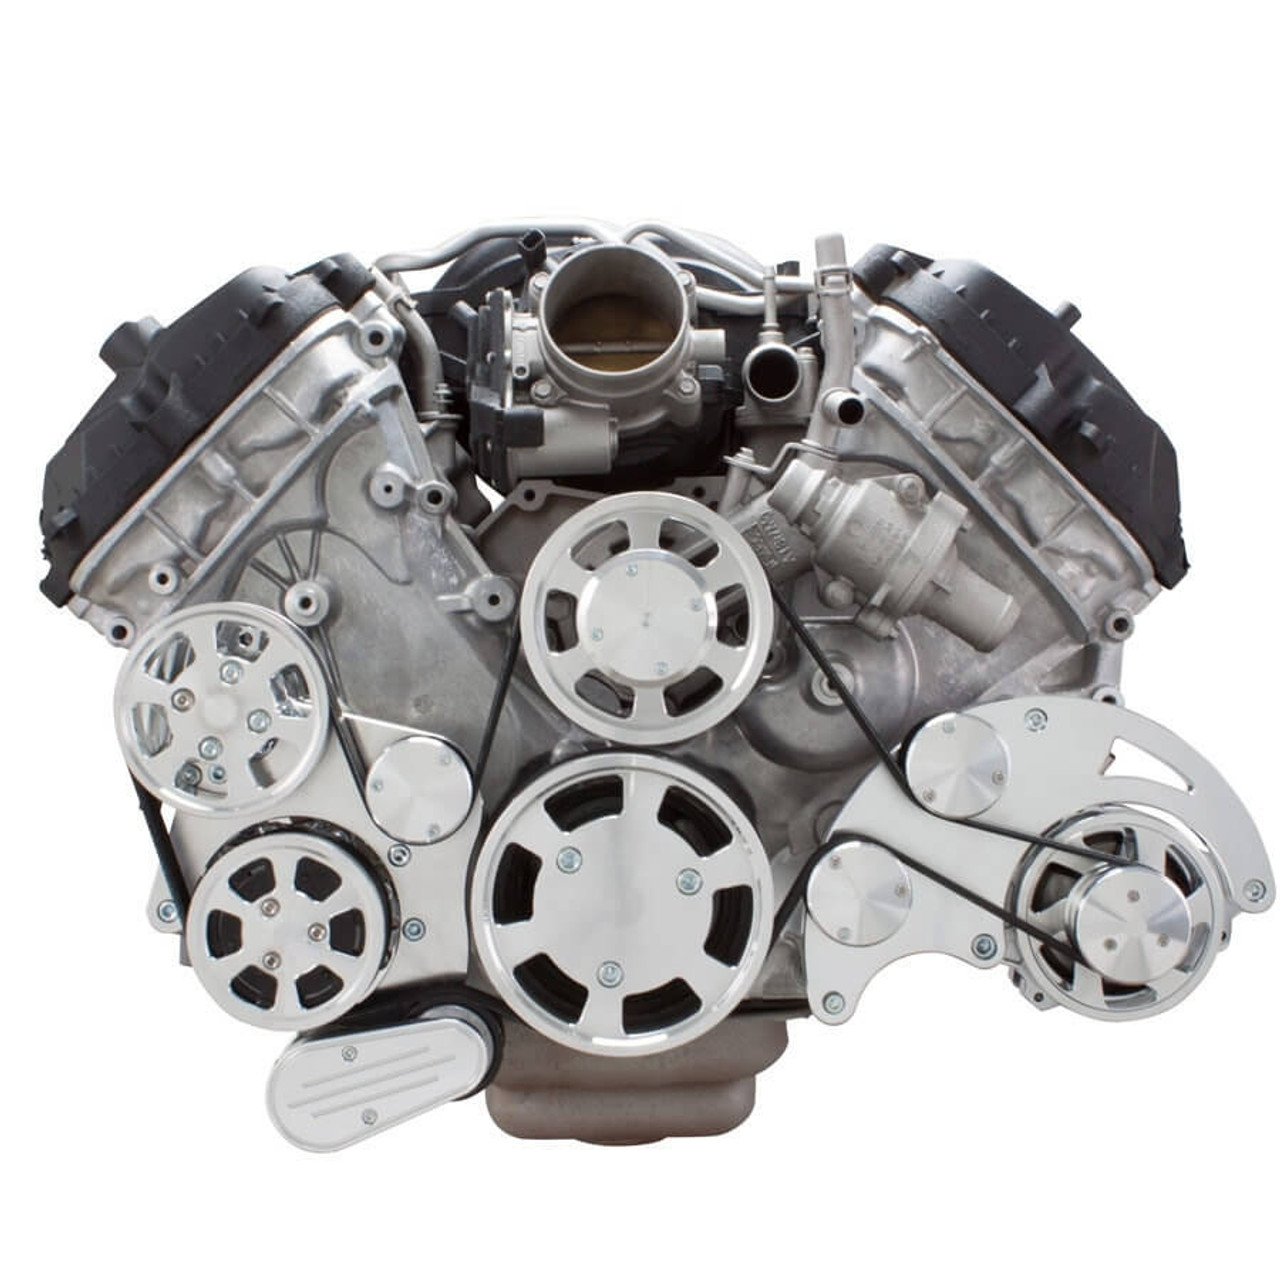 hight resolution of  serpentine system for ford coyote 5 0 ac power steering alternator